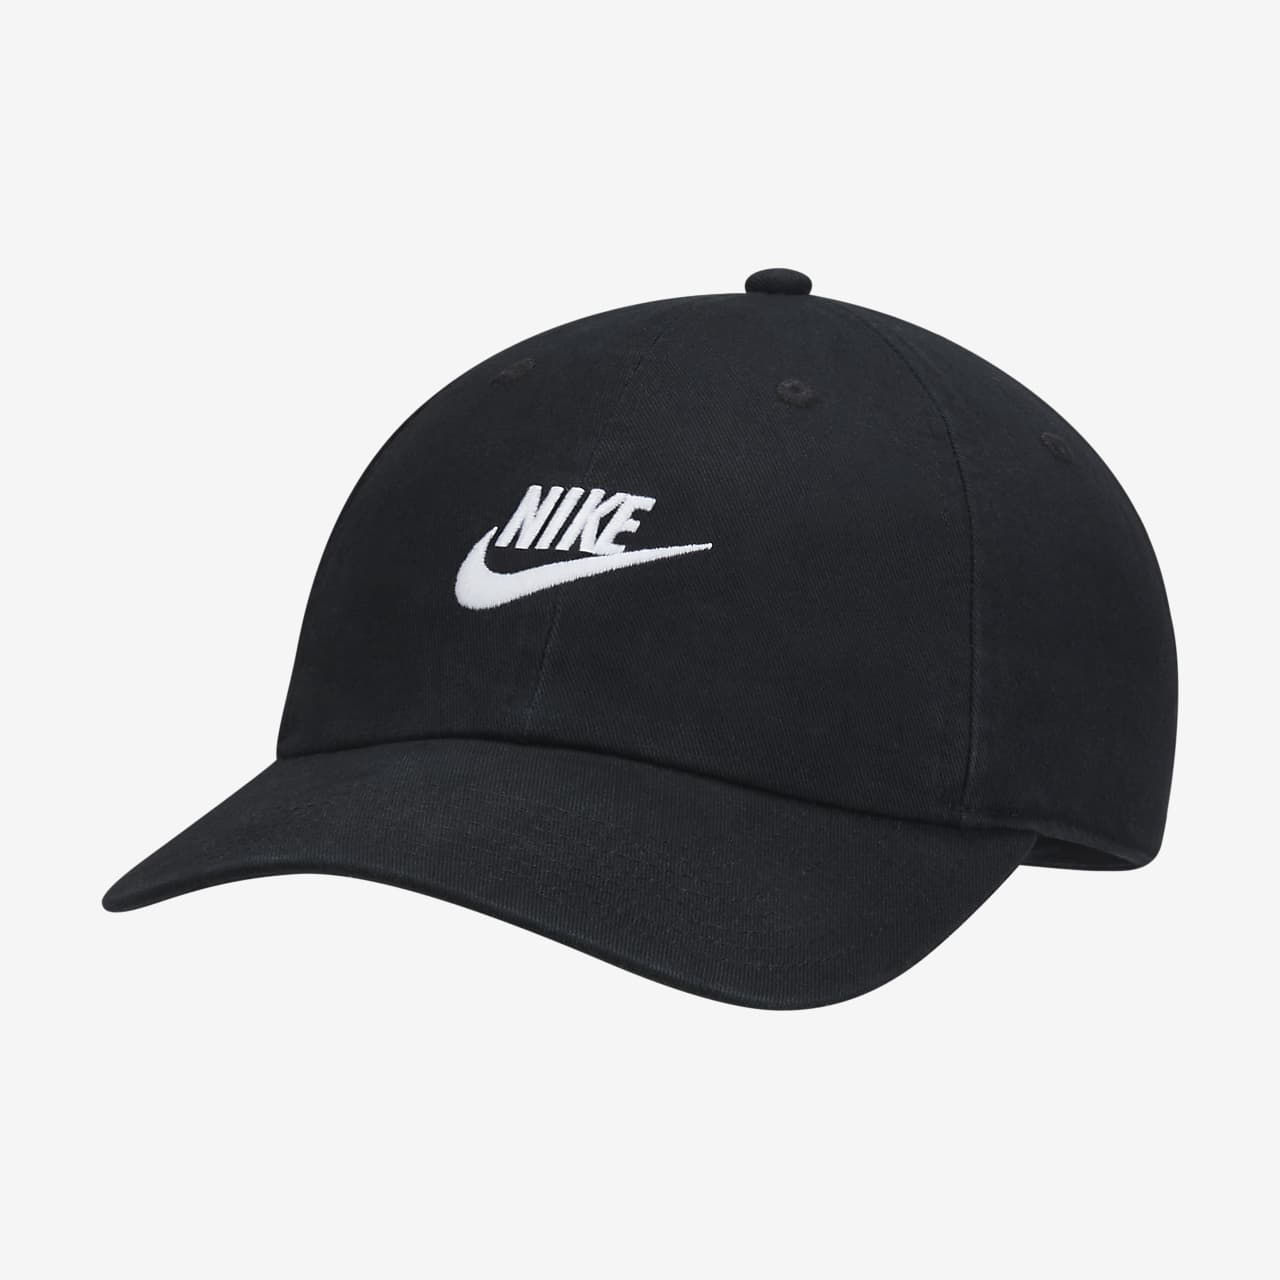 low priced 8a681 7c210 Hat. Nike Sportswear Heritage86 Futura Washed